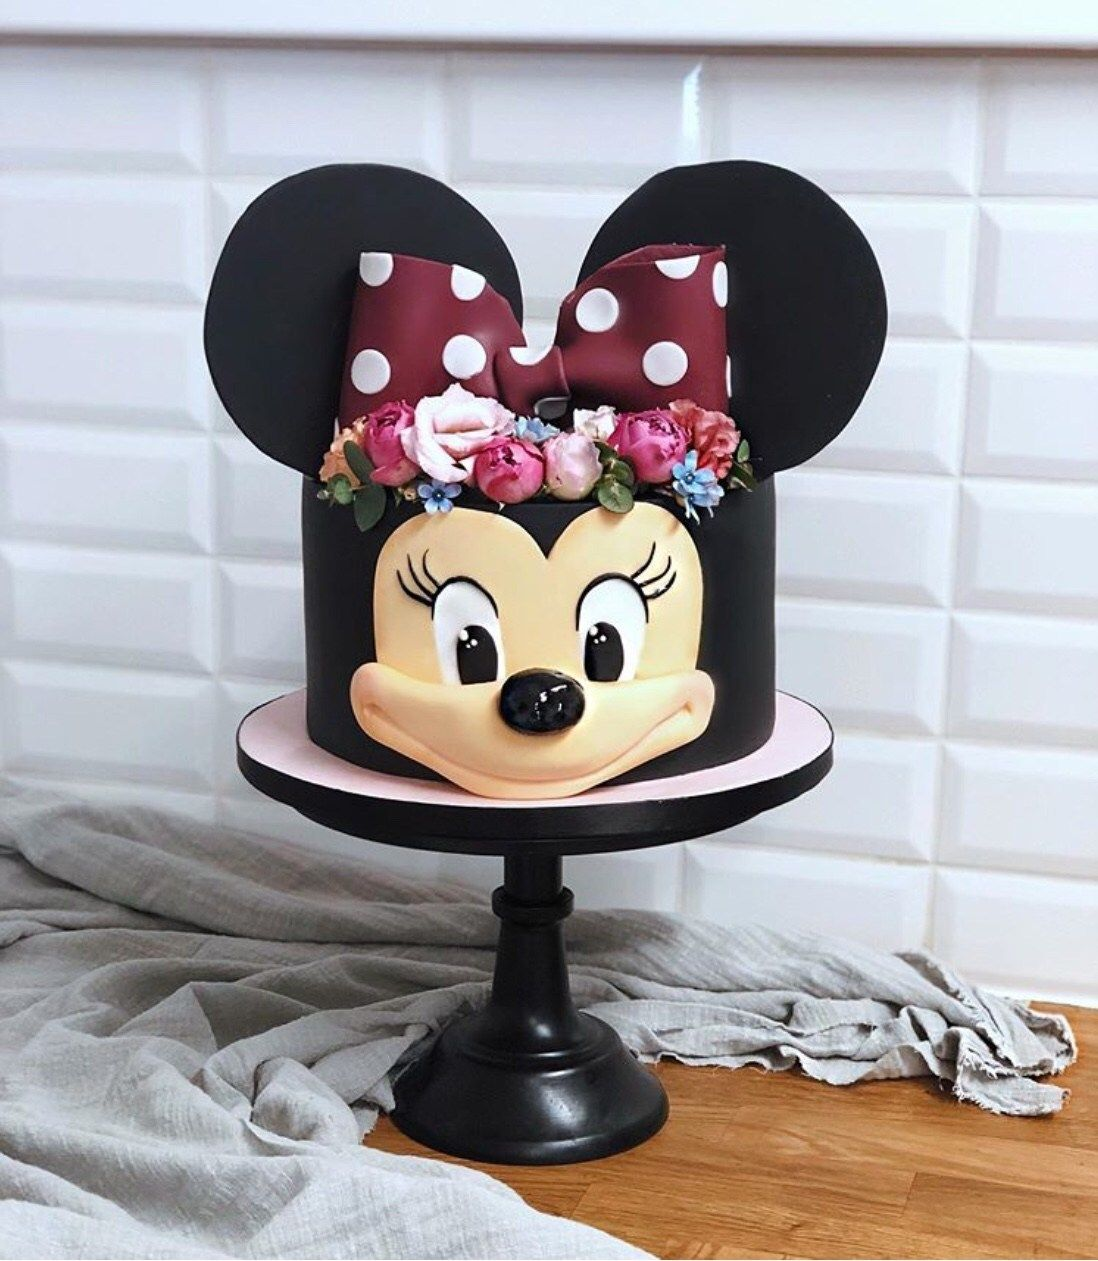 22 cute minnie mouse cake designs minnie mouse cake